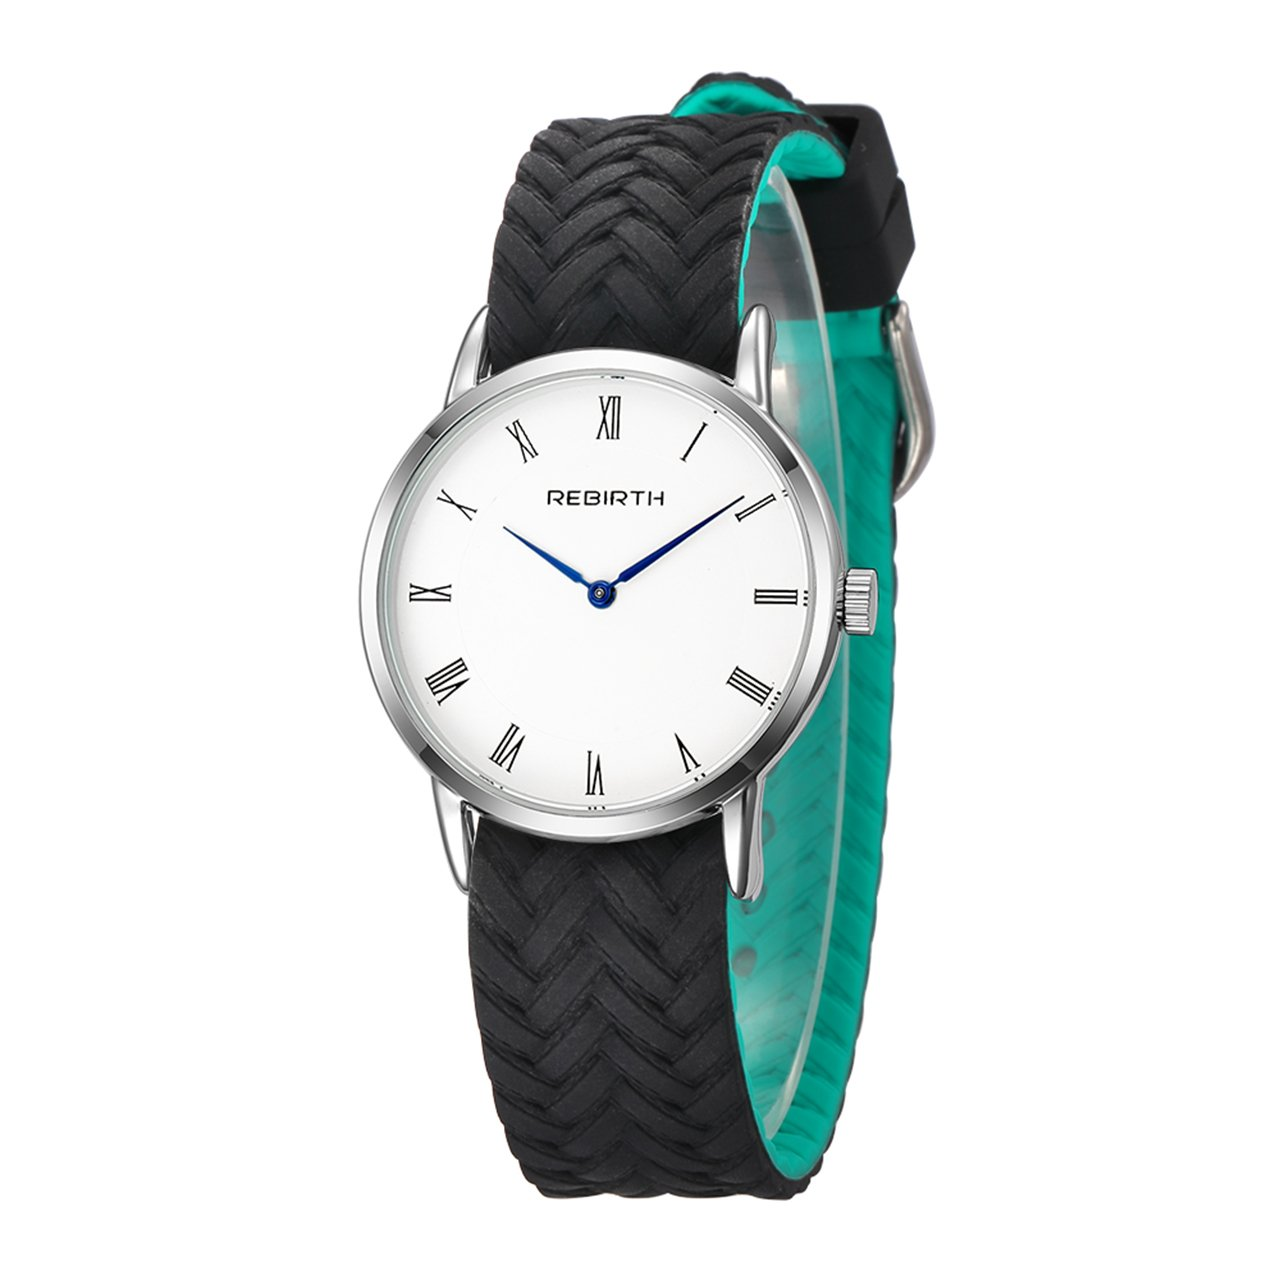 Top Plaza Unisex Casual Simple Silicone Strap Analog Quartz Watch Unique Reversible Doulbe Color Band Japanese Quartz Waterproof Watch(Black and Green)